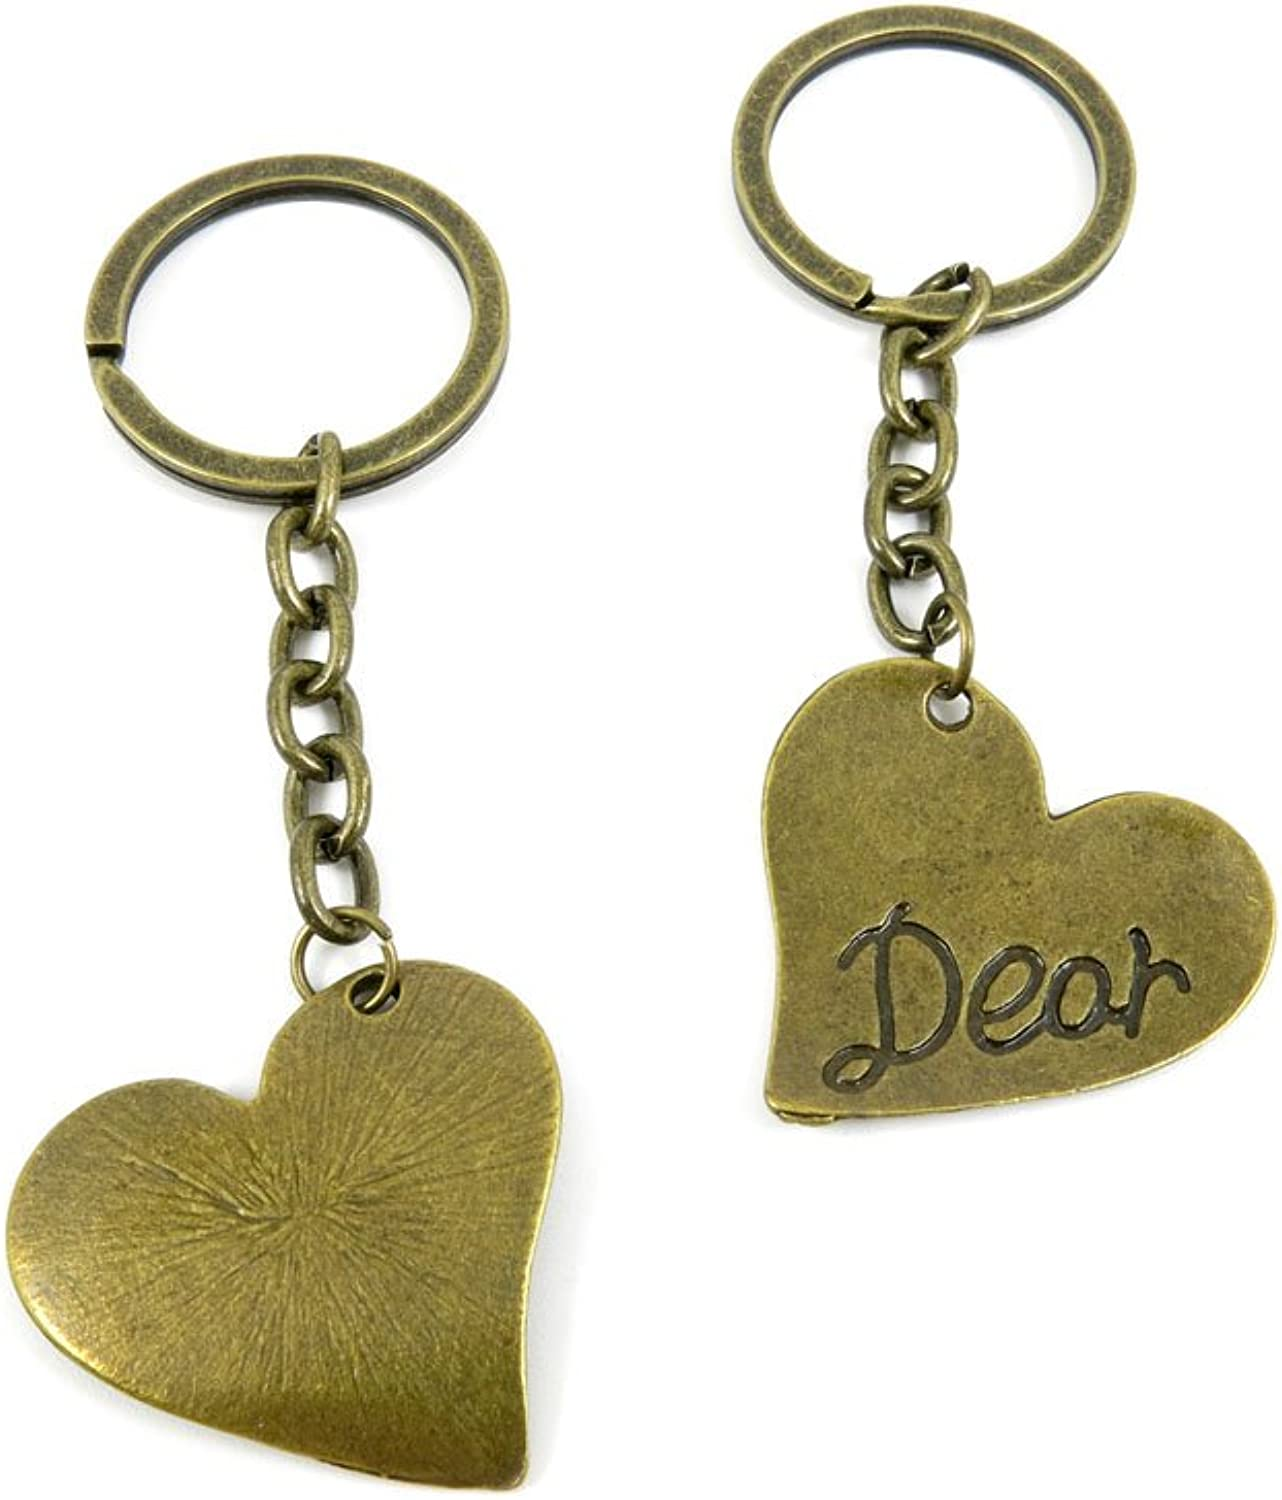 80 PCS Keyring Car Door Key Ring Tag Chain Keychain Wholesale Suppliers Charms Handmade D3SF8 Dear Heart Tag